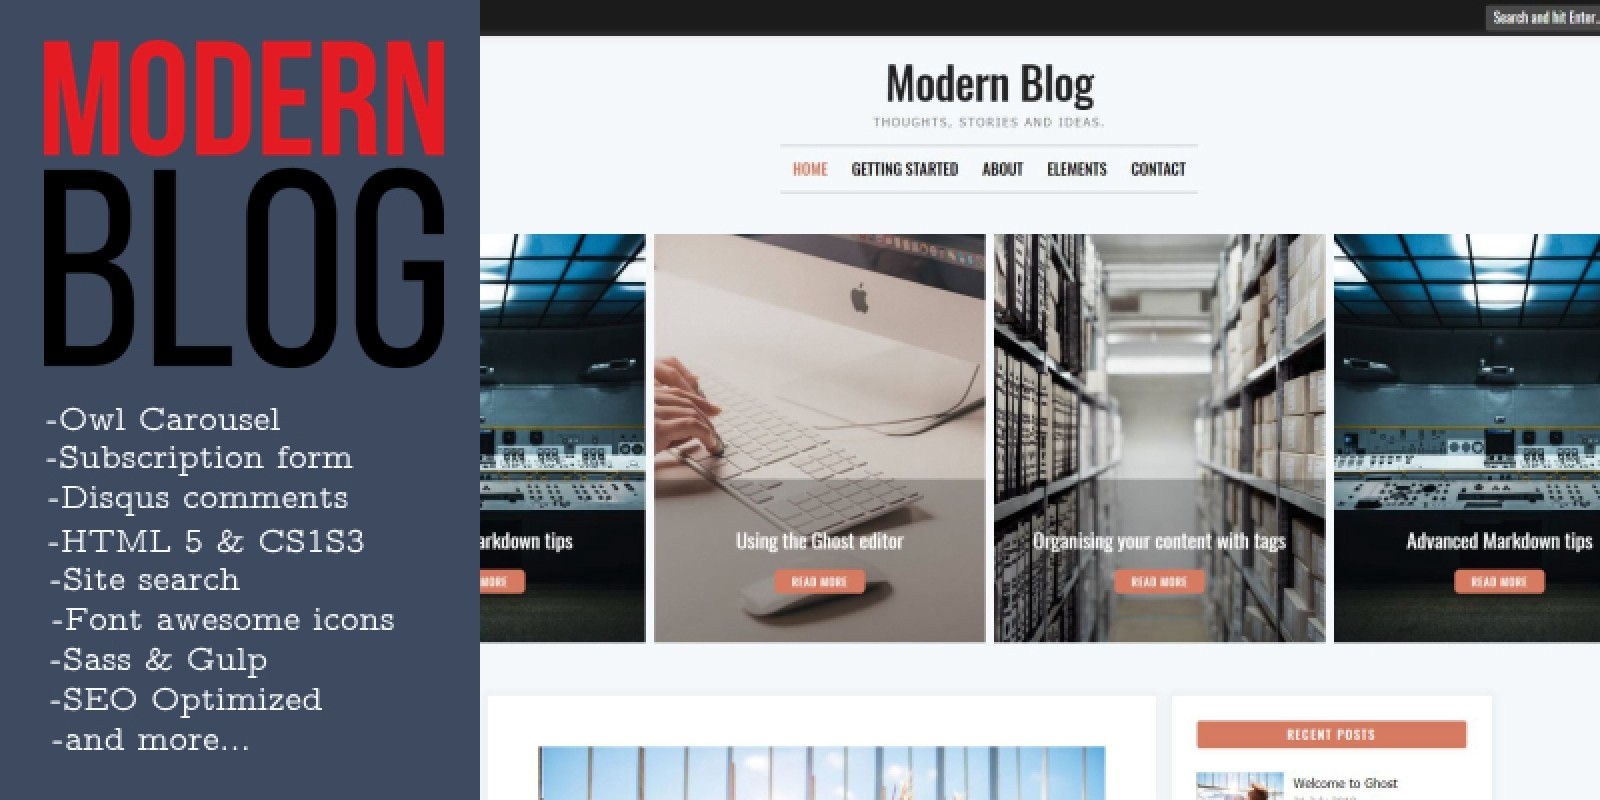 ModernBlog - Responsive Blogging Ghost Theme